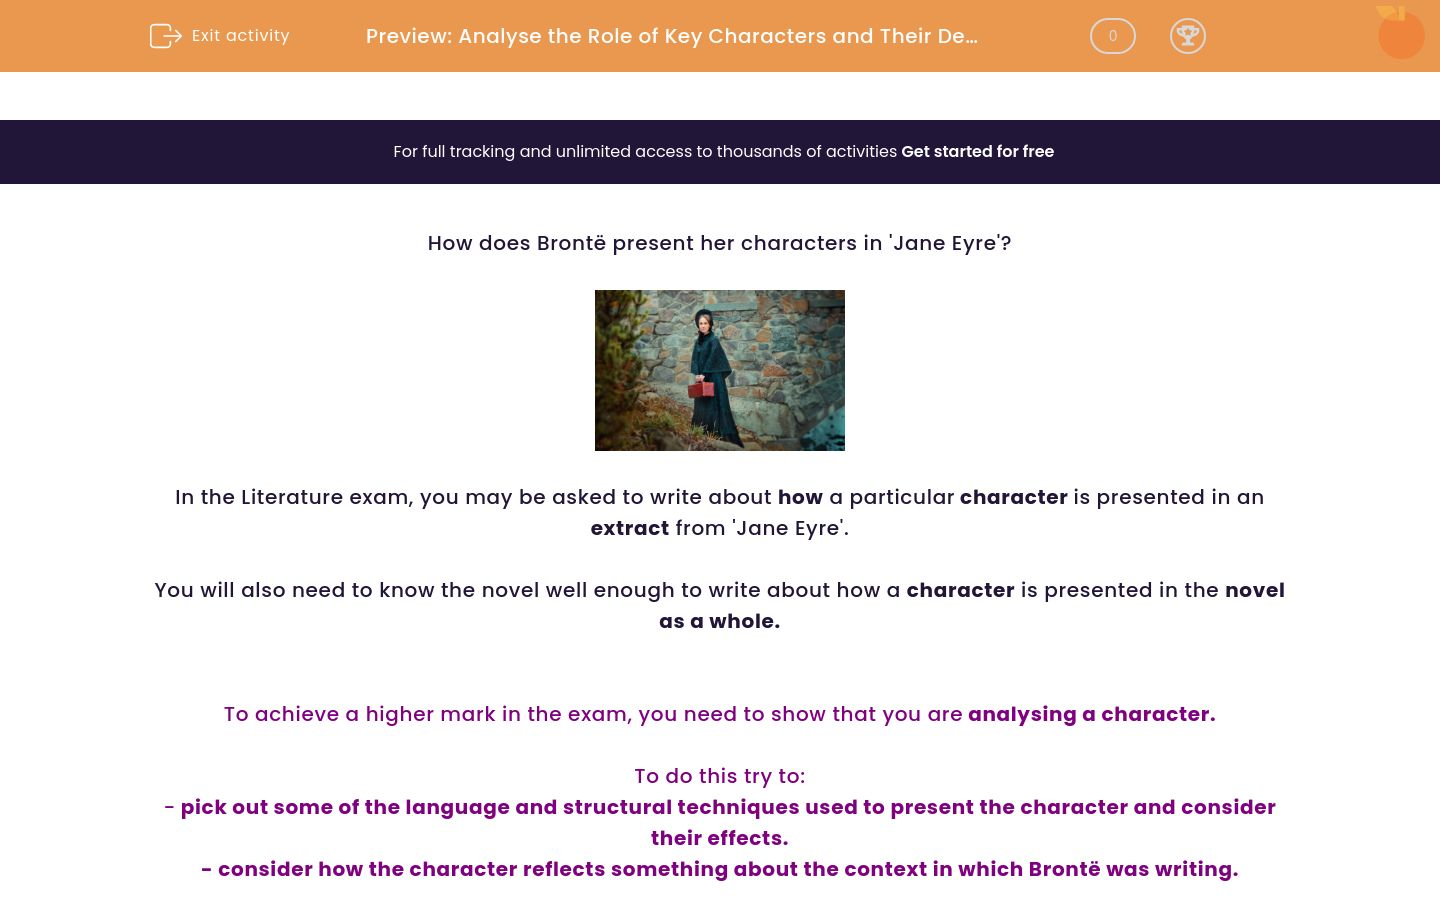 'Analyse the Role of Key Characters and Their Development in 'Jane Eyre'' worksheet